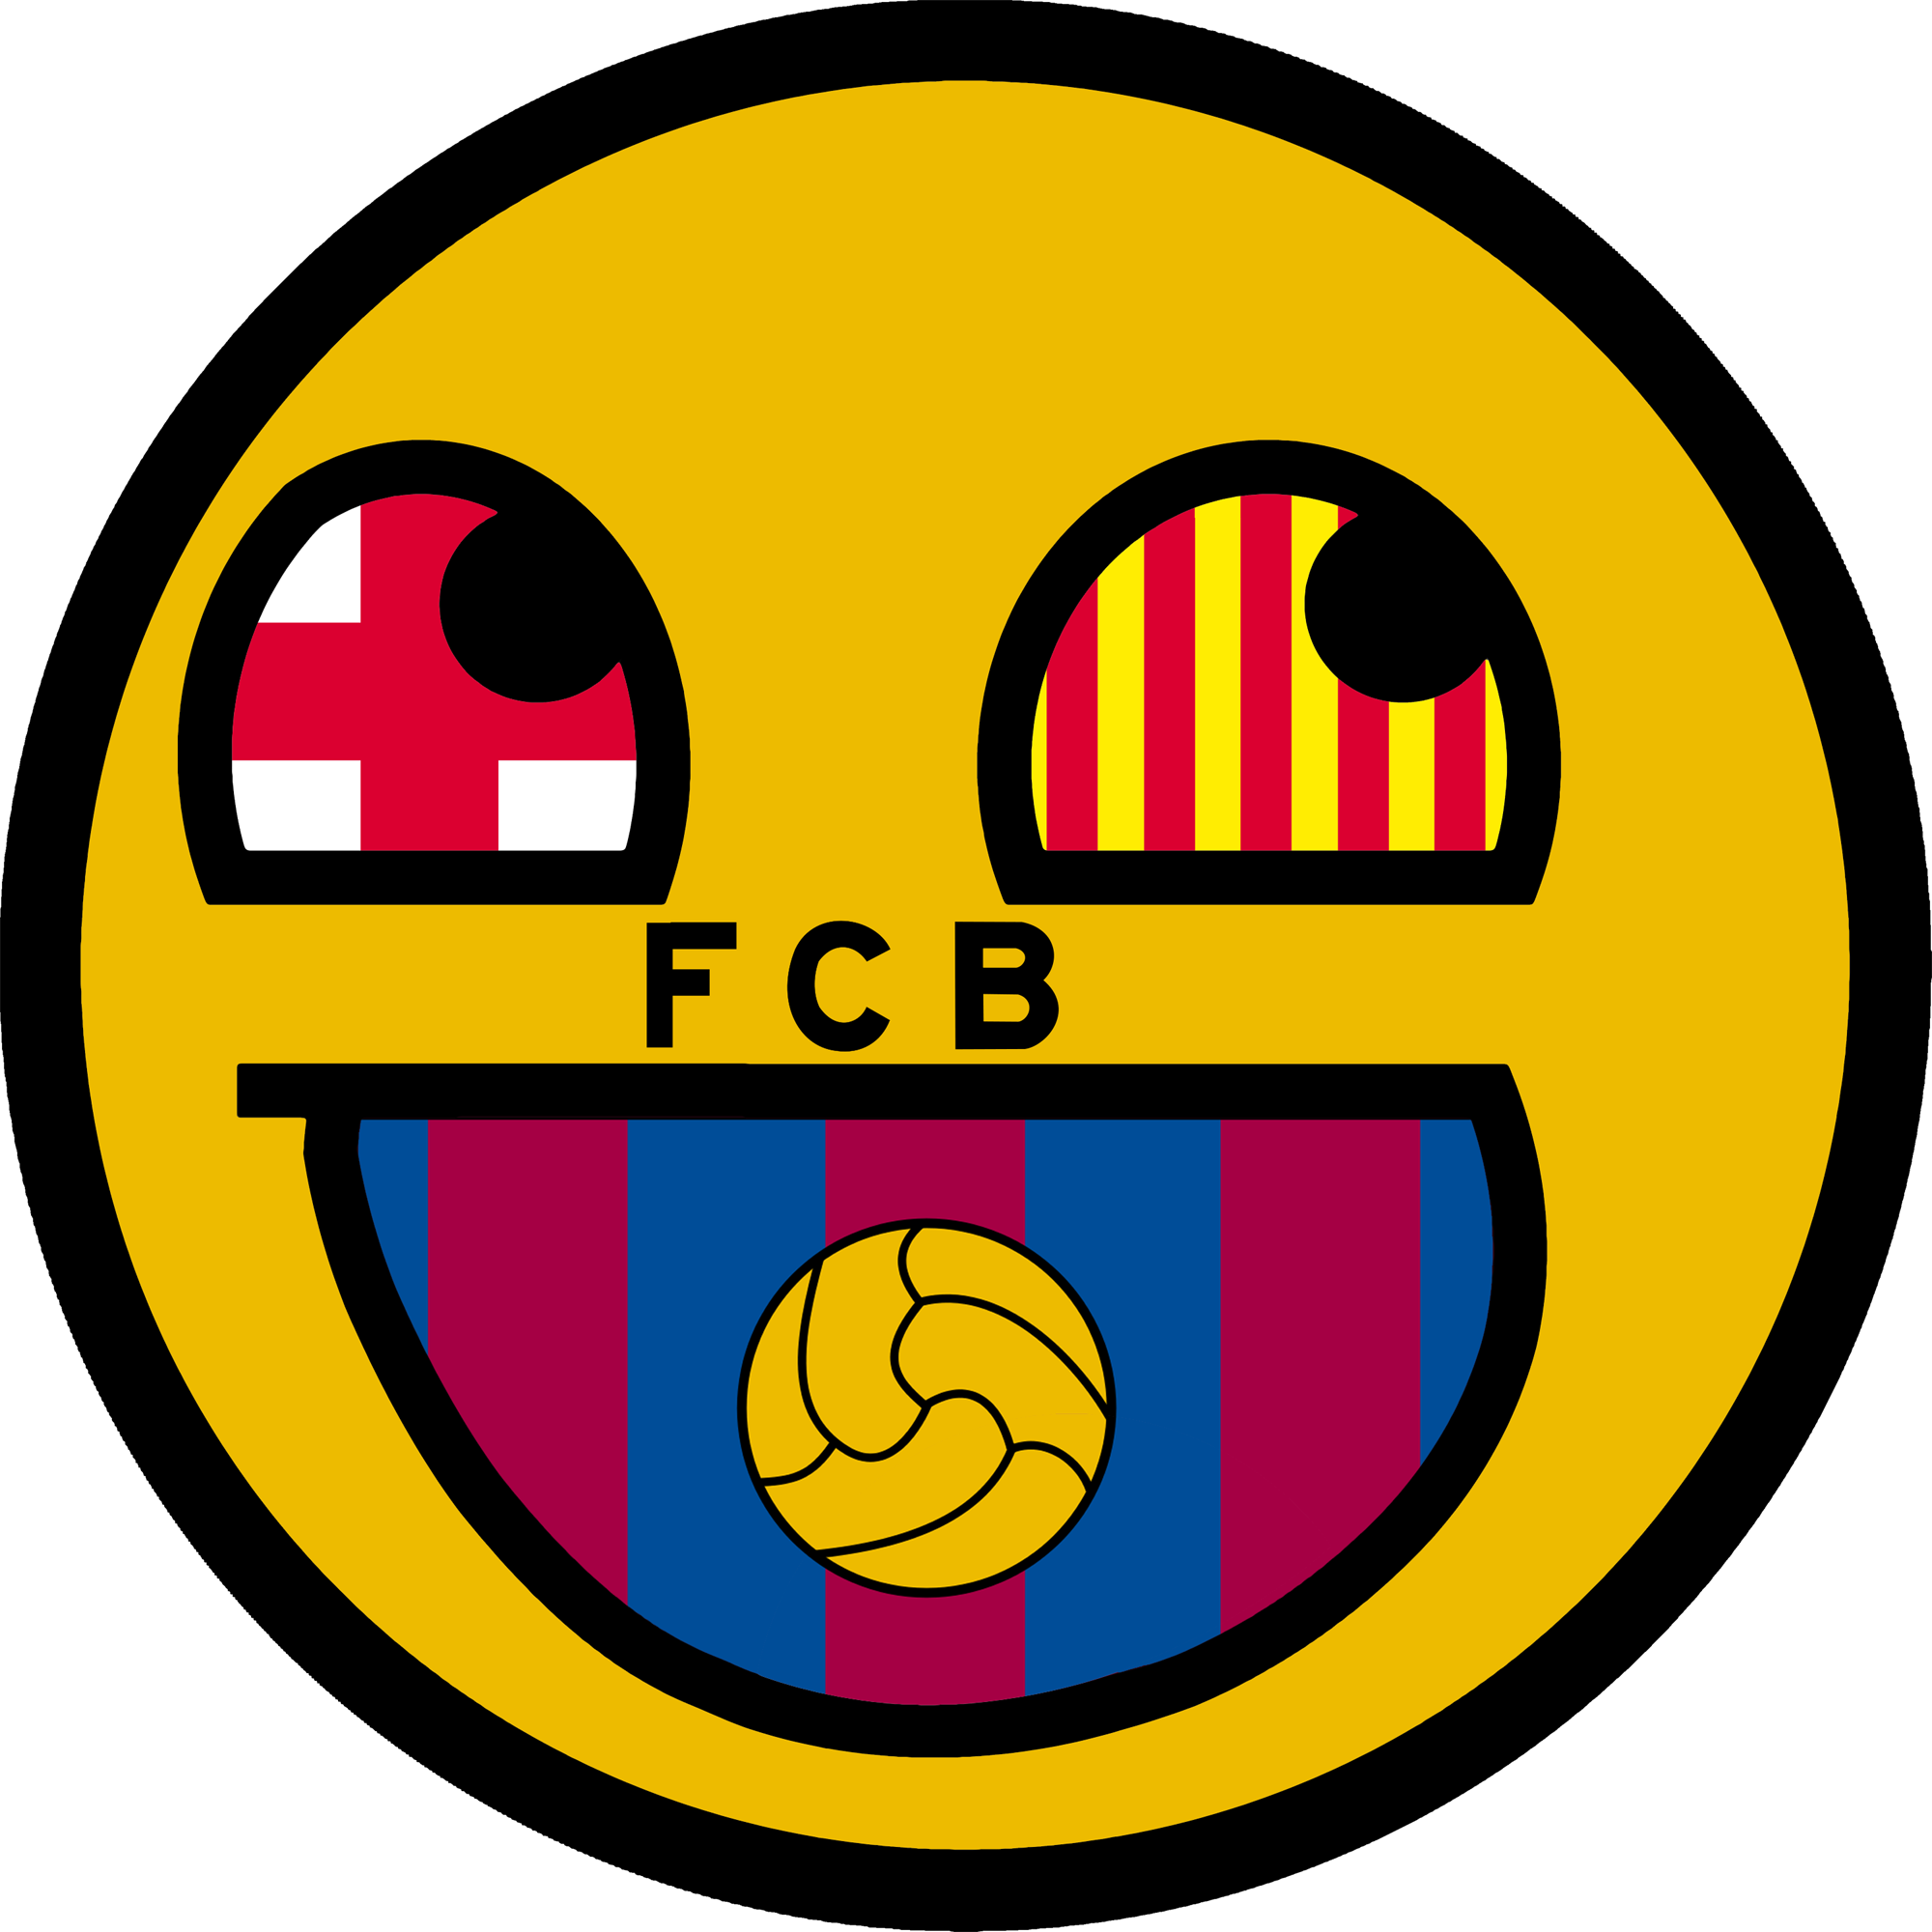 Barca clipart 20 free Cliparts | Download images on ...